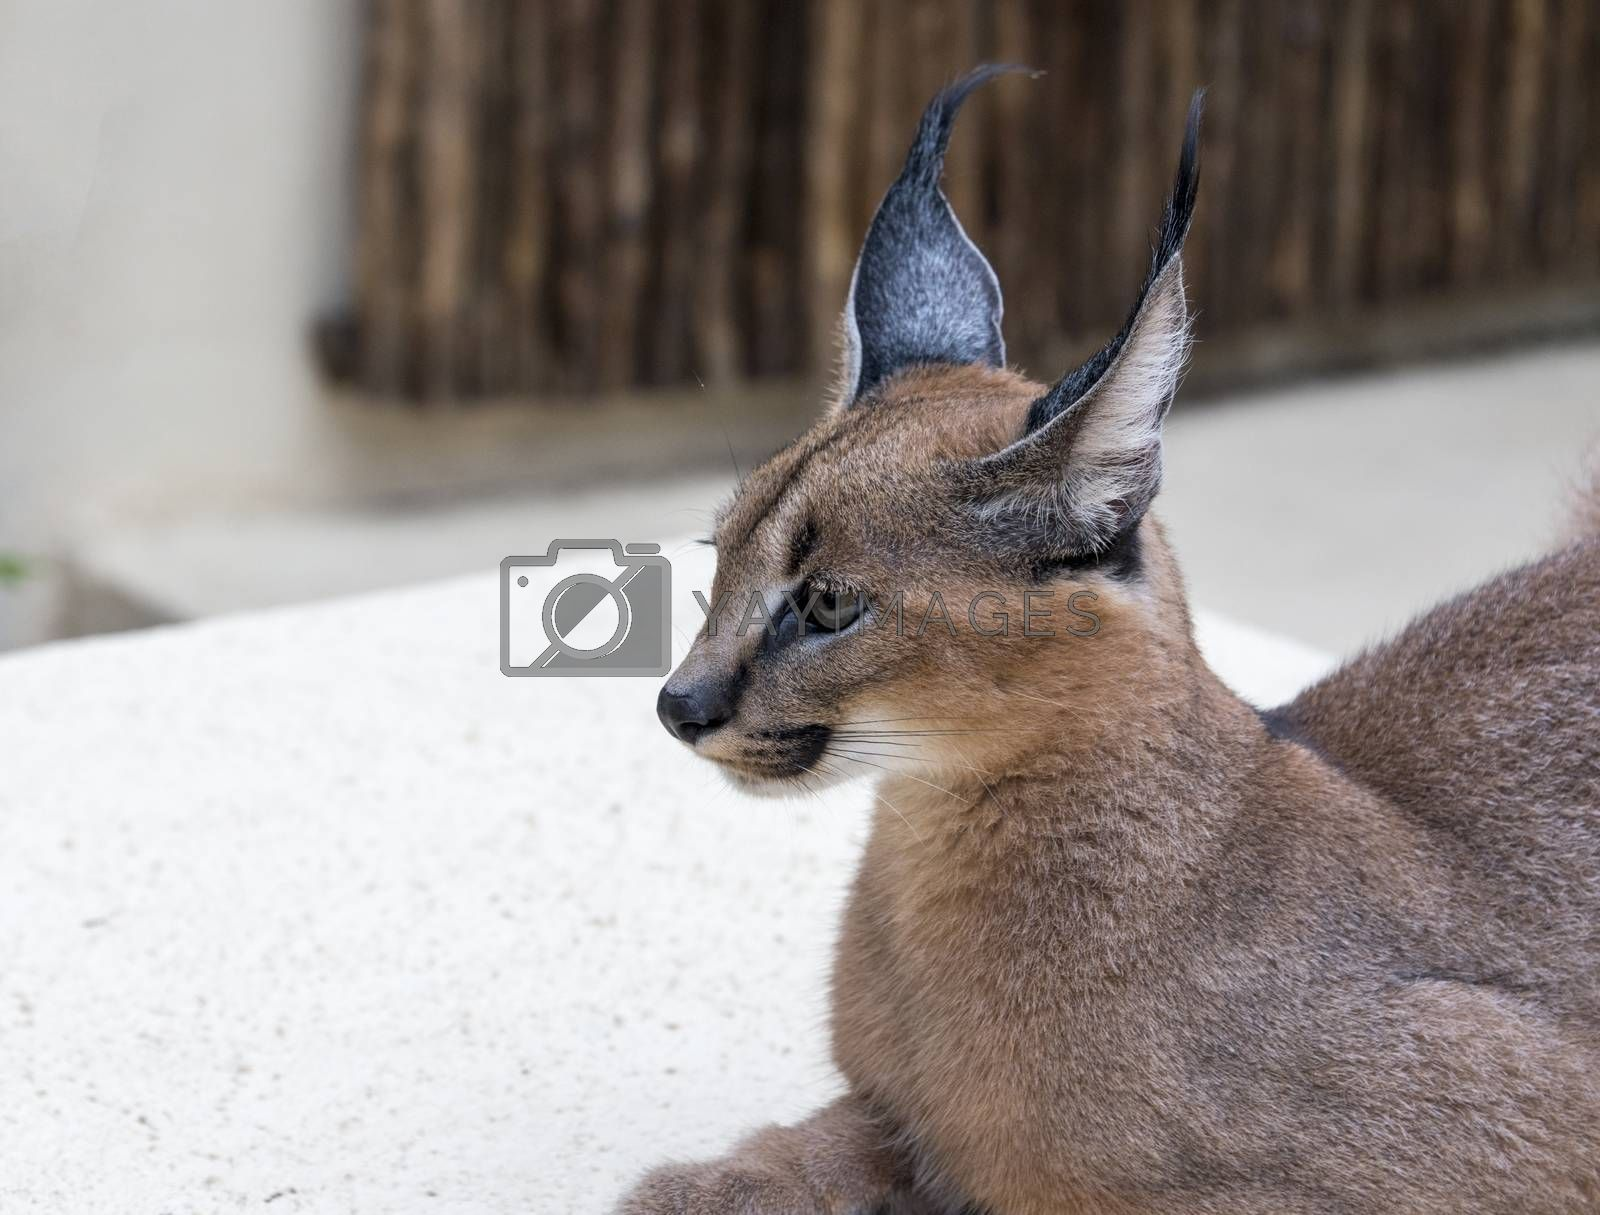 lynx wild cat in south africa africa by compuinfoto